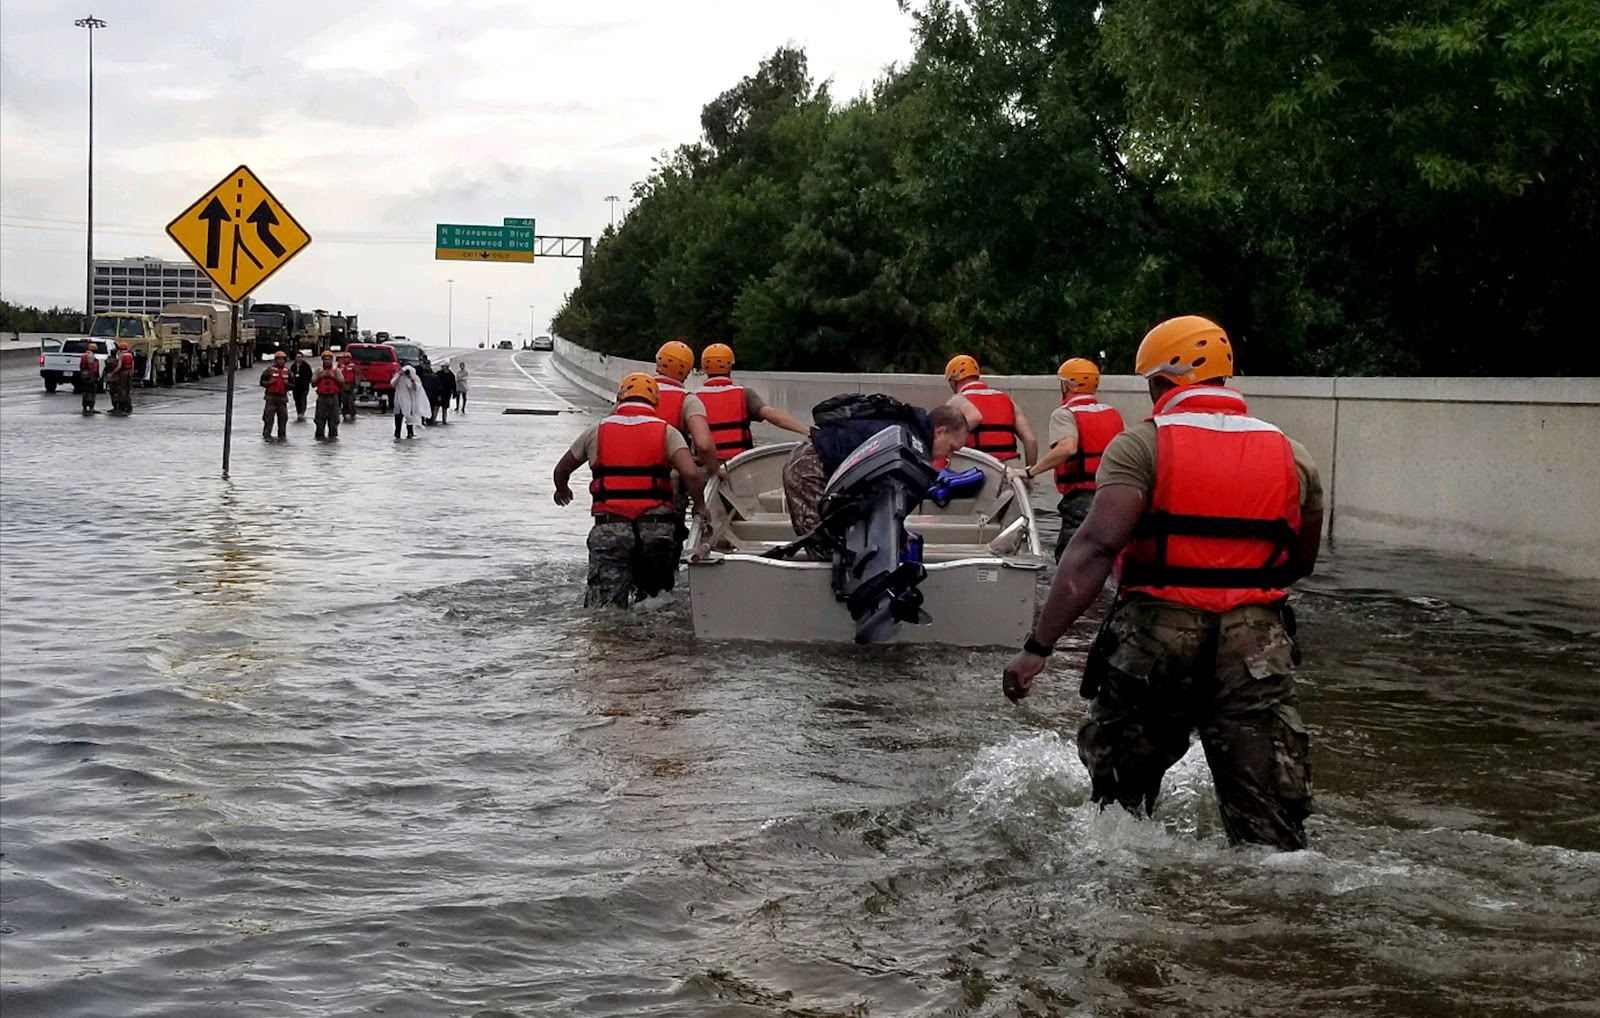 File:Texas Army National Guard Hurricane Harvey Response.jpg ...